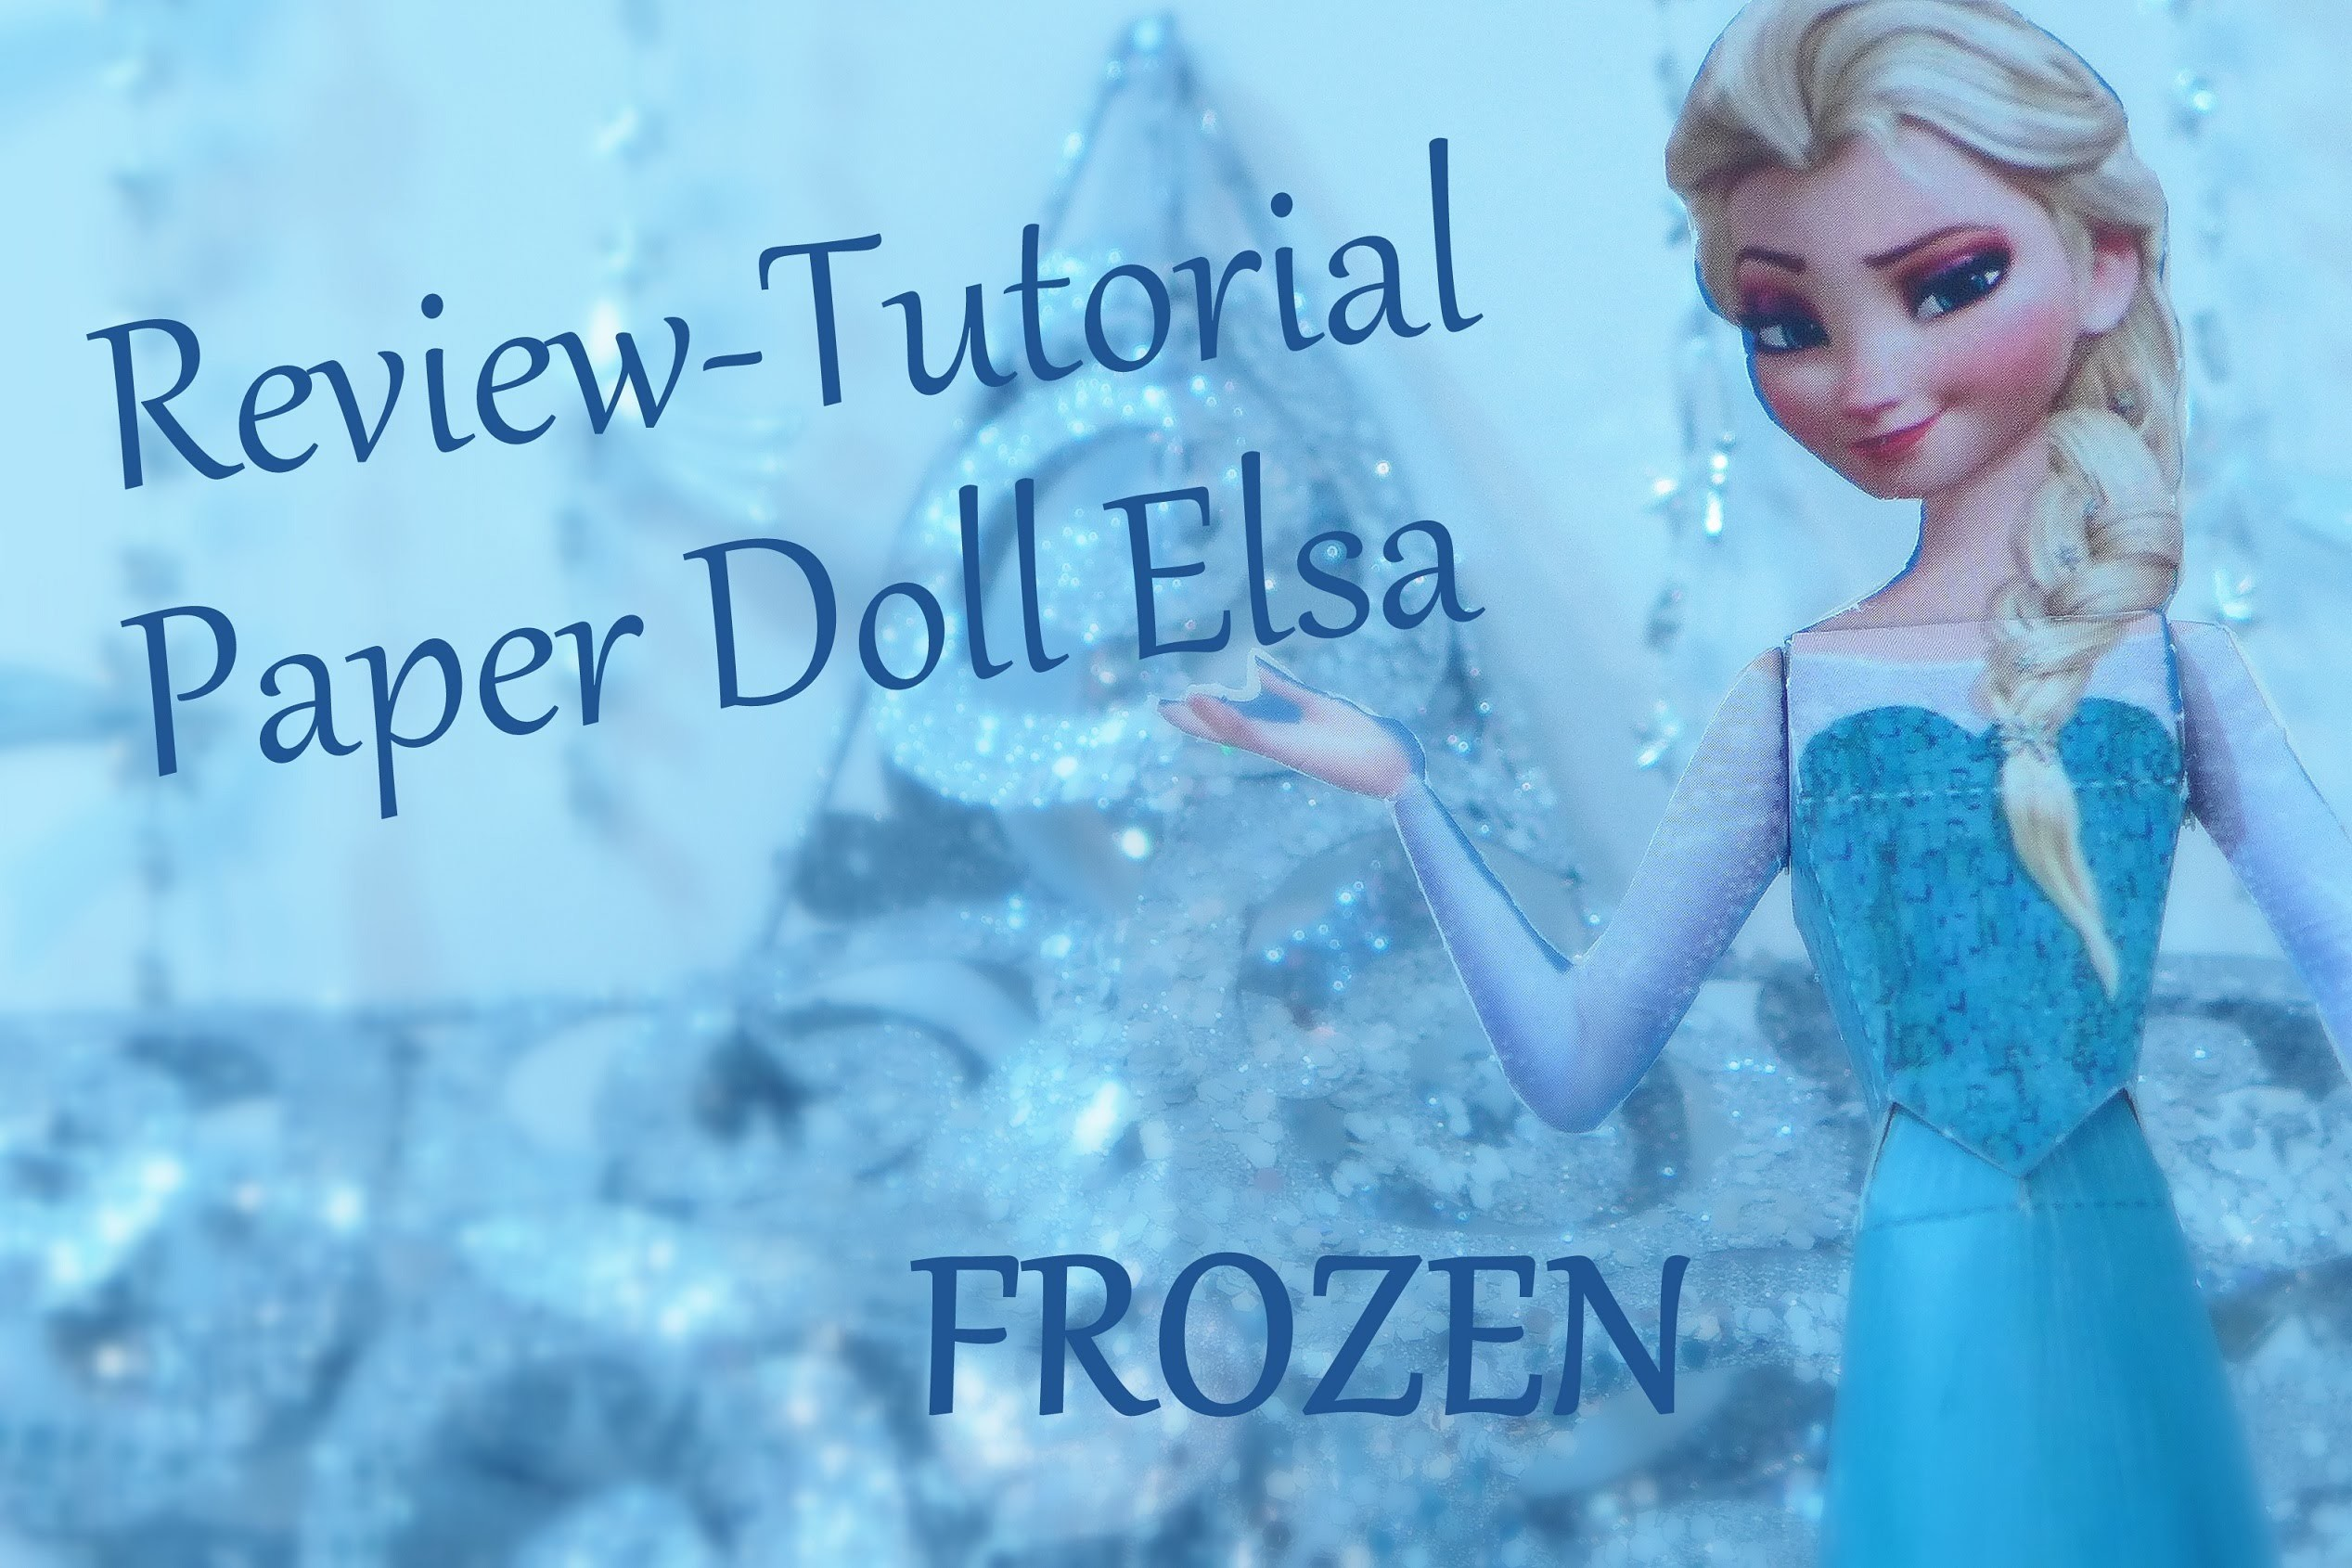 REVIEW TUTORIAL FROZEN Paper Doll da Elsa - Lojas Marisa